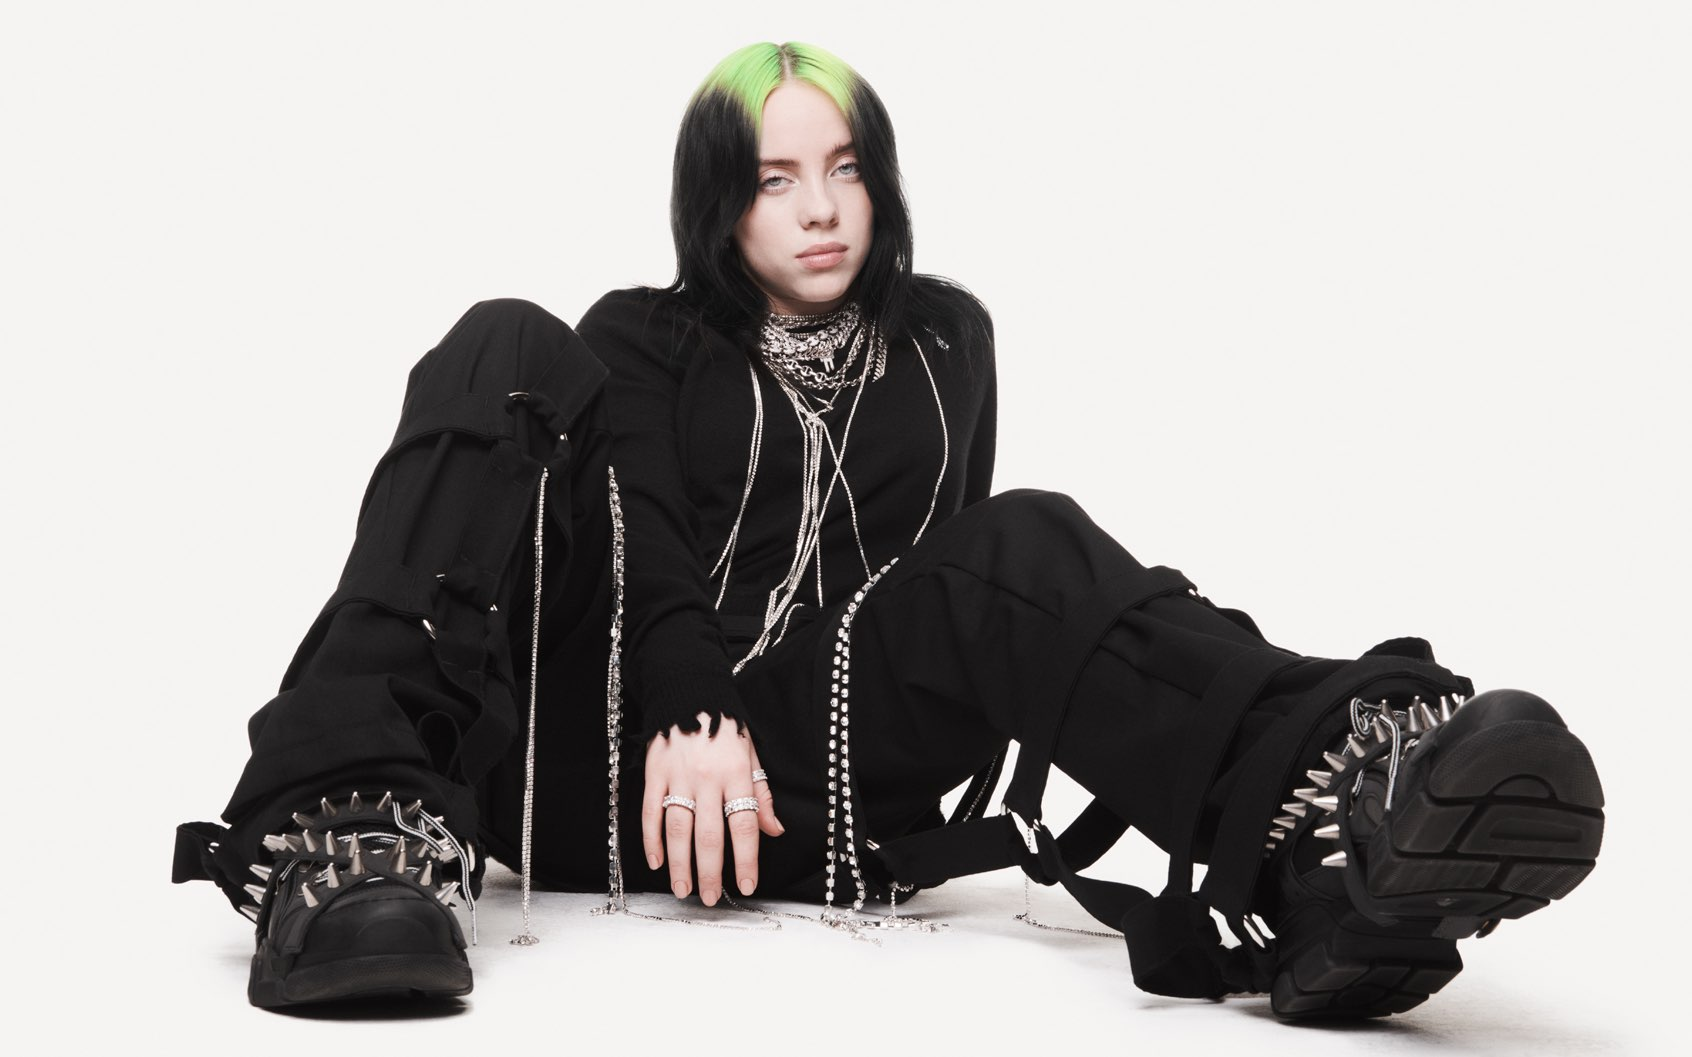 Apple Music Awards winner Billie Eilish